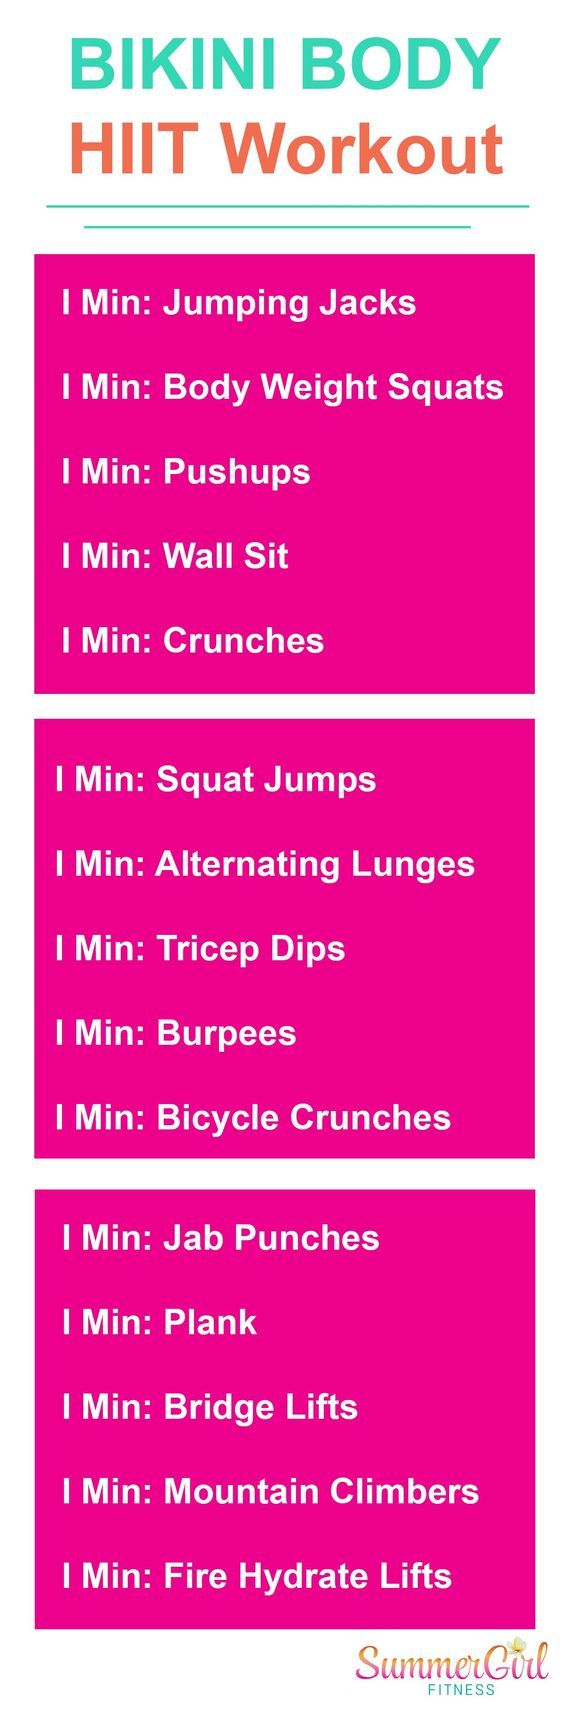 Bikini Body Home HIIT Workout: #SummerGirlFitness - more workouts at Youtube.com/SummeGirlFitness. Try this HIIT printable workout at home to get your SWEAT on. #HIITWorkout